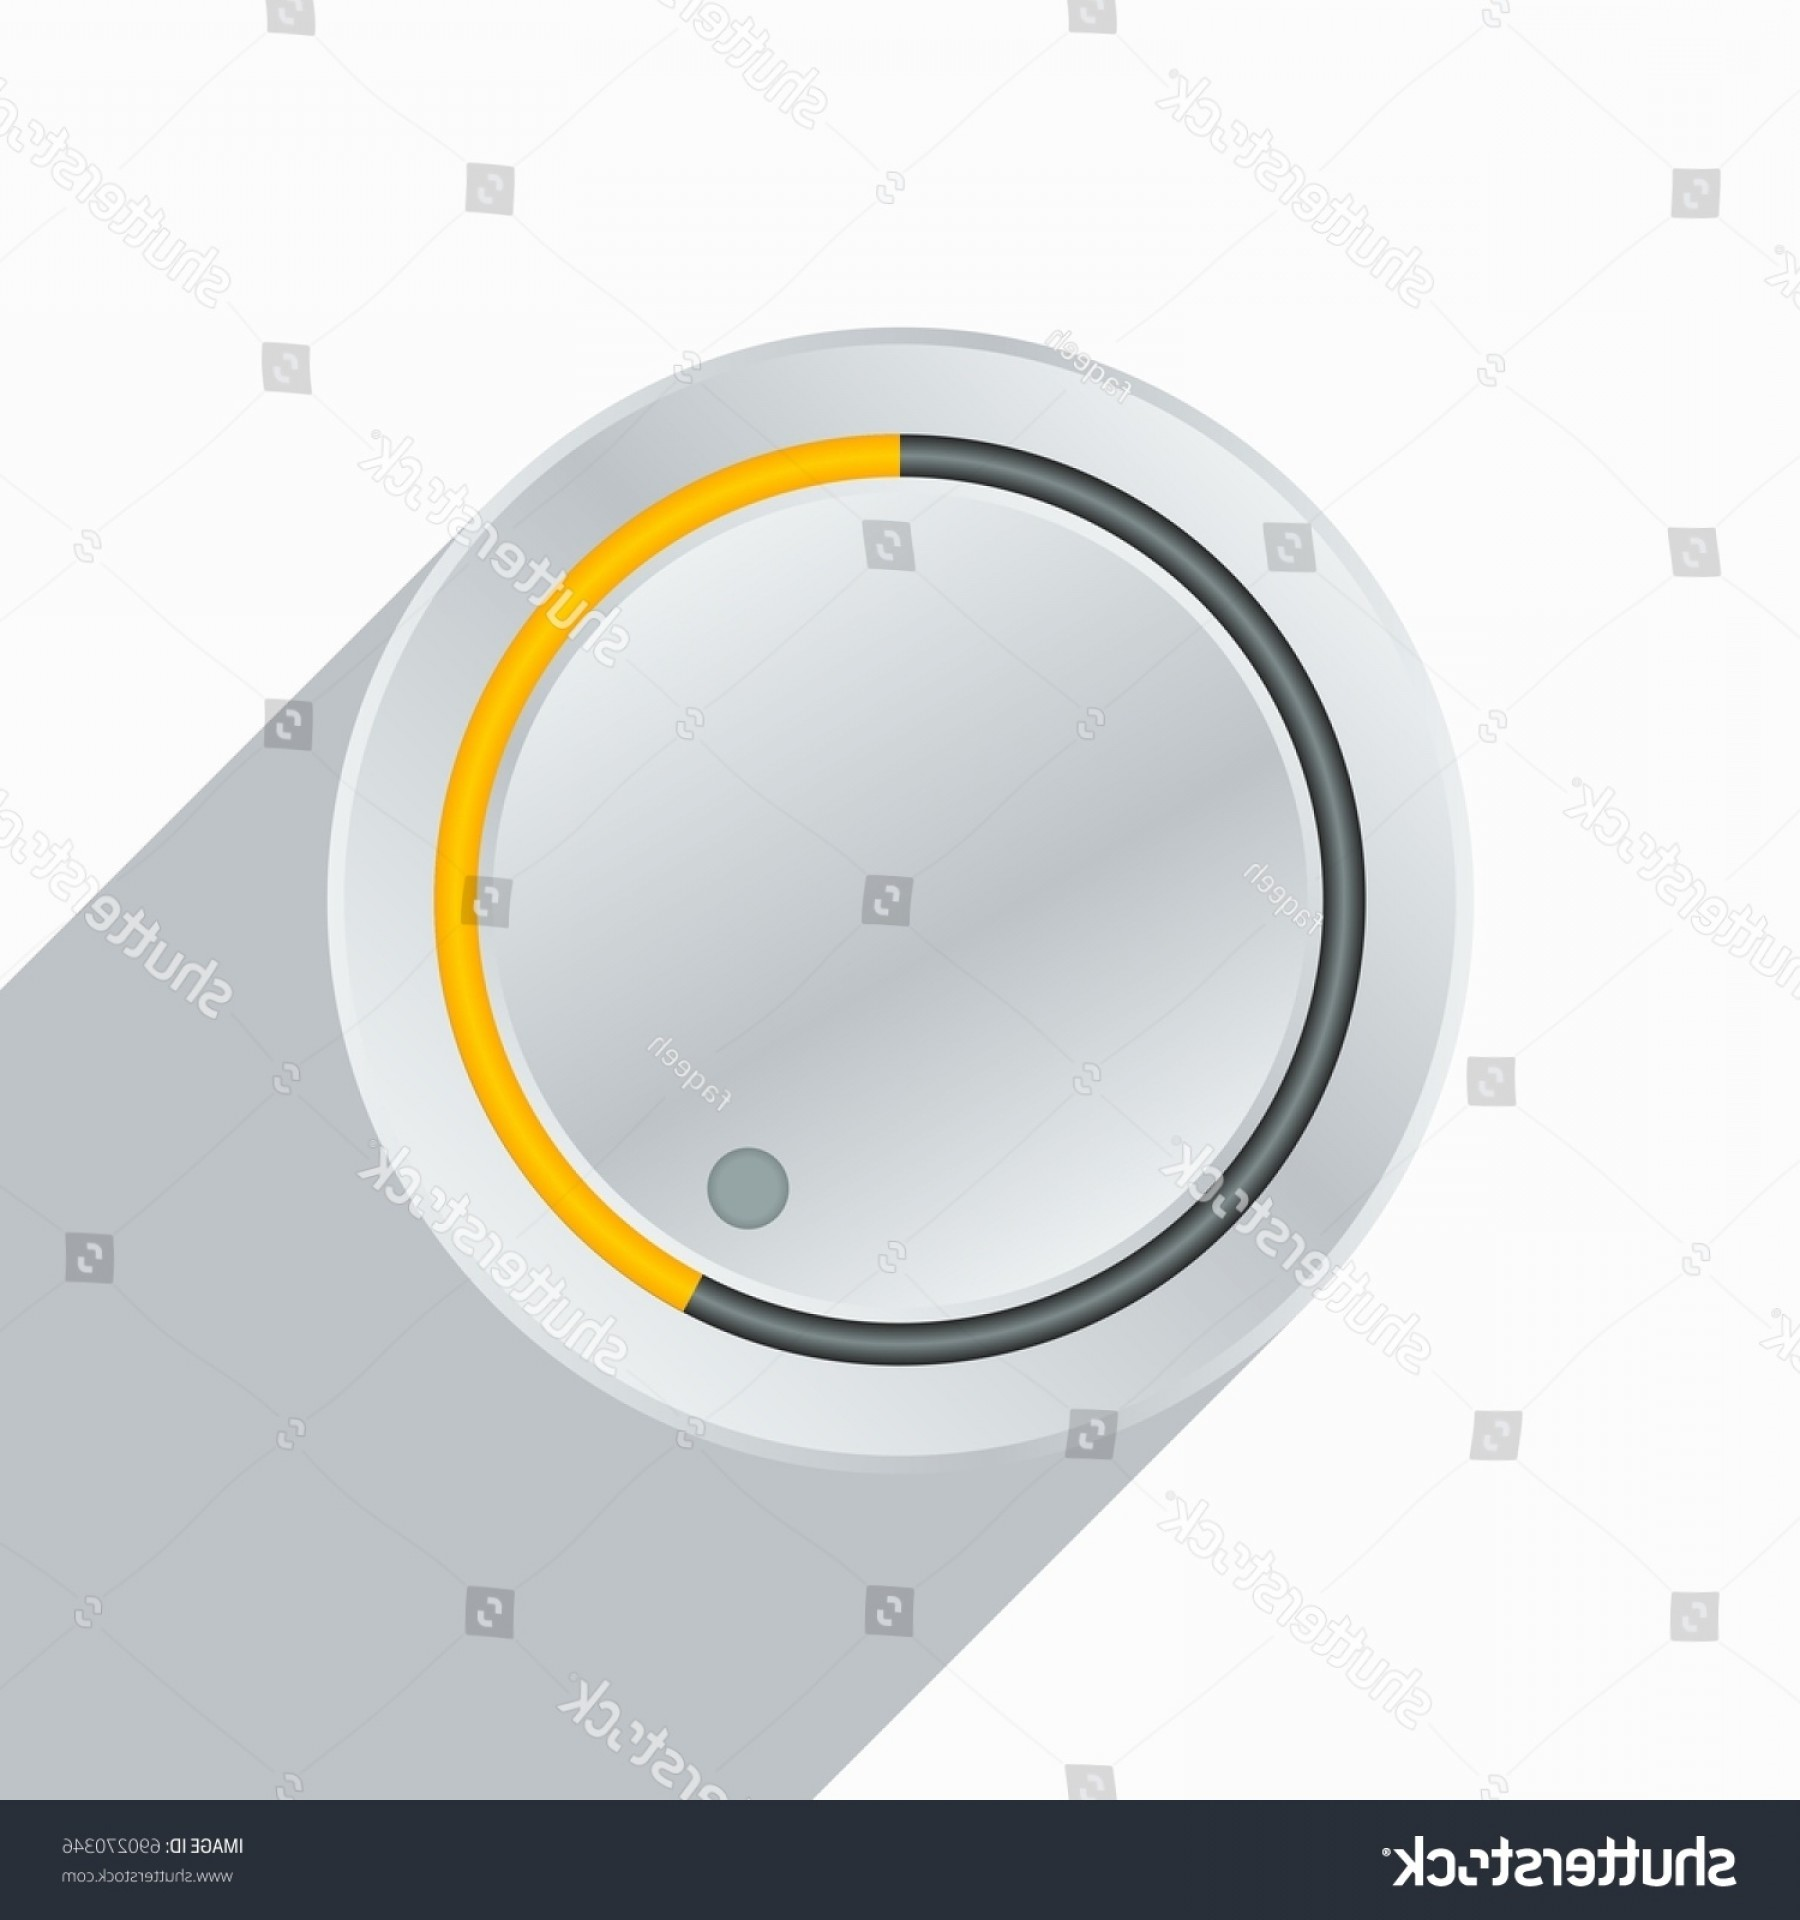 Volume Button Vector: Editable Volume Button Vector Illustration